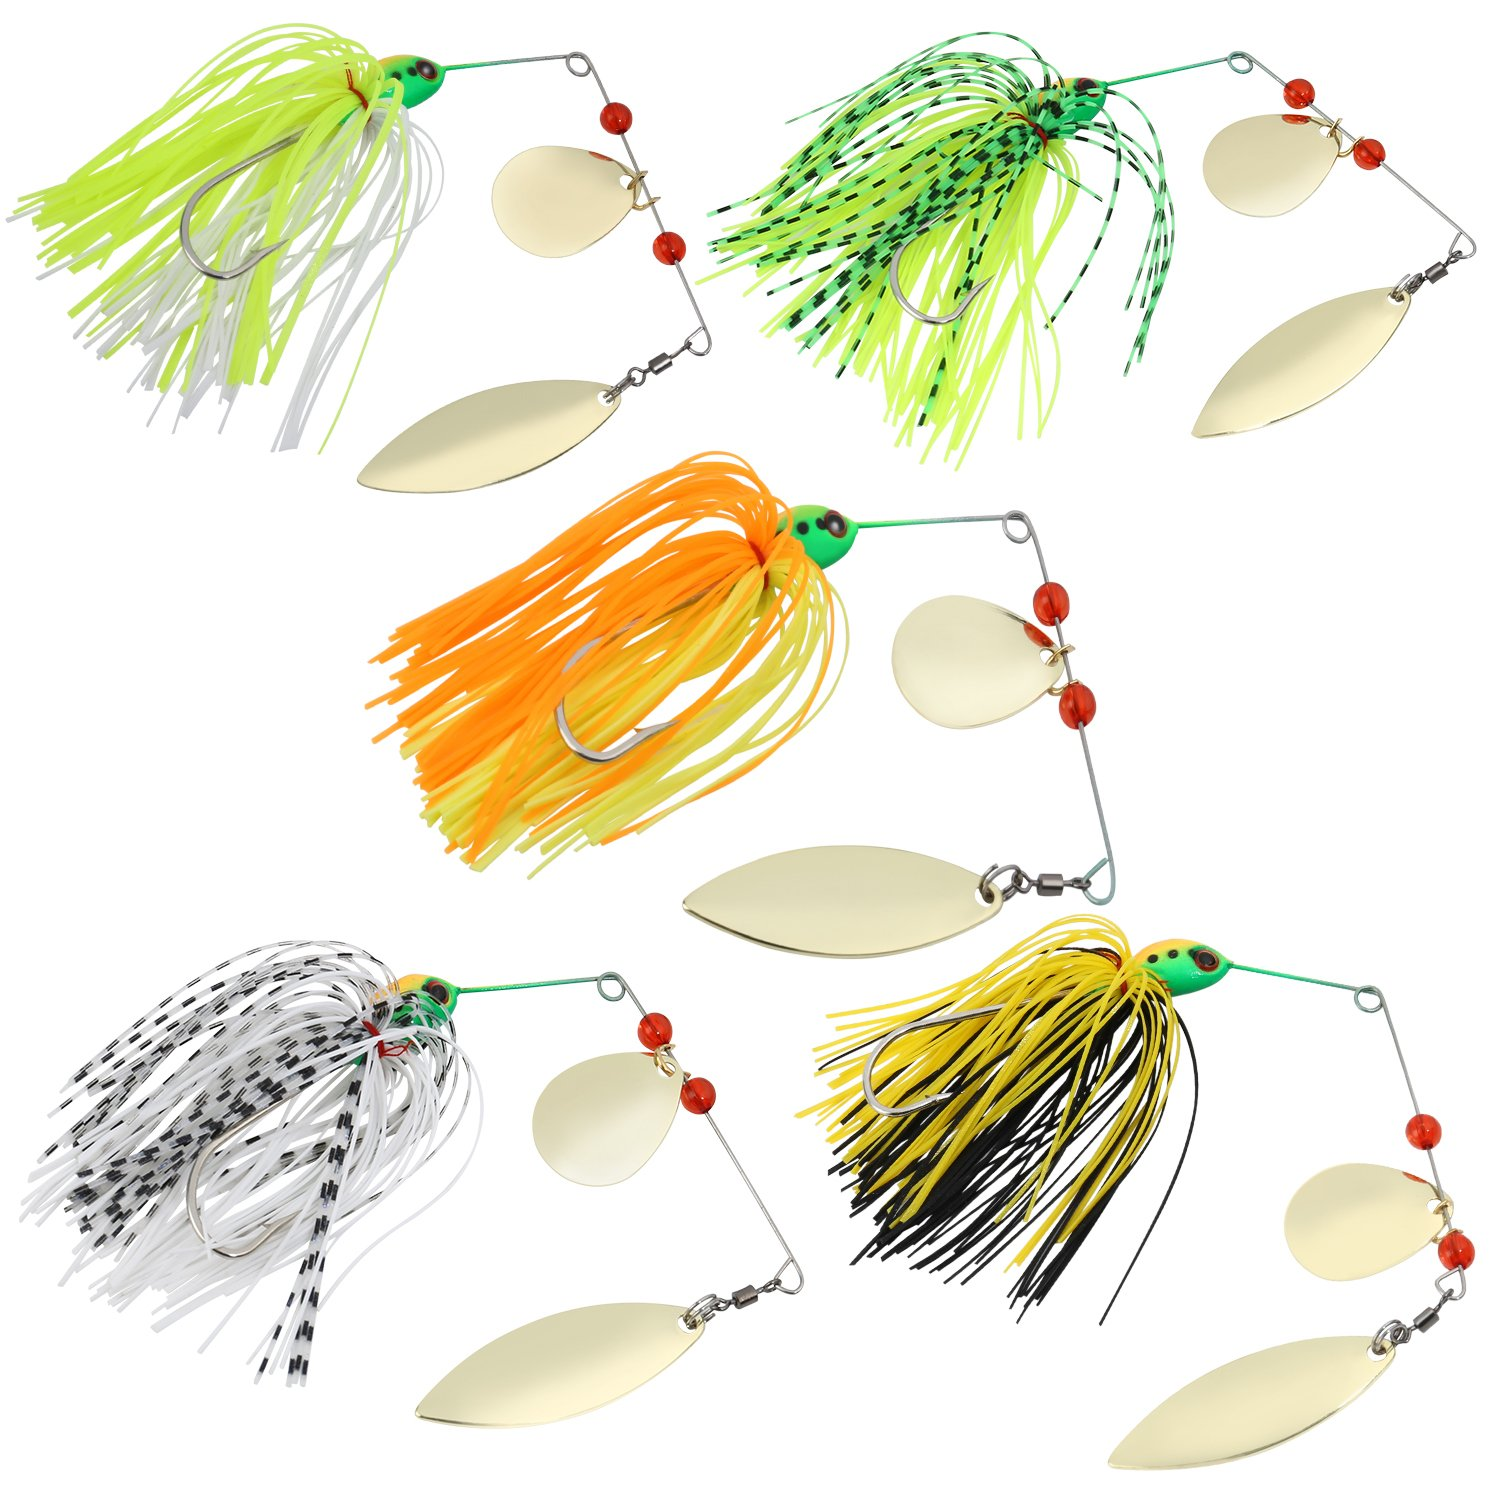 Sougayilang Fishing Lures Spinnerbait Lure for Bass Pike Fishing by Sougayilang